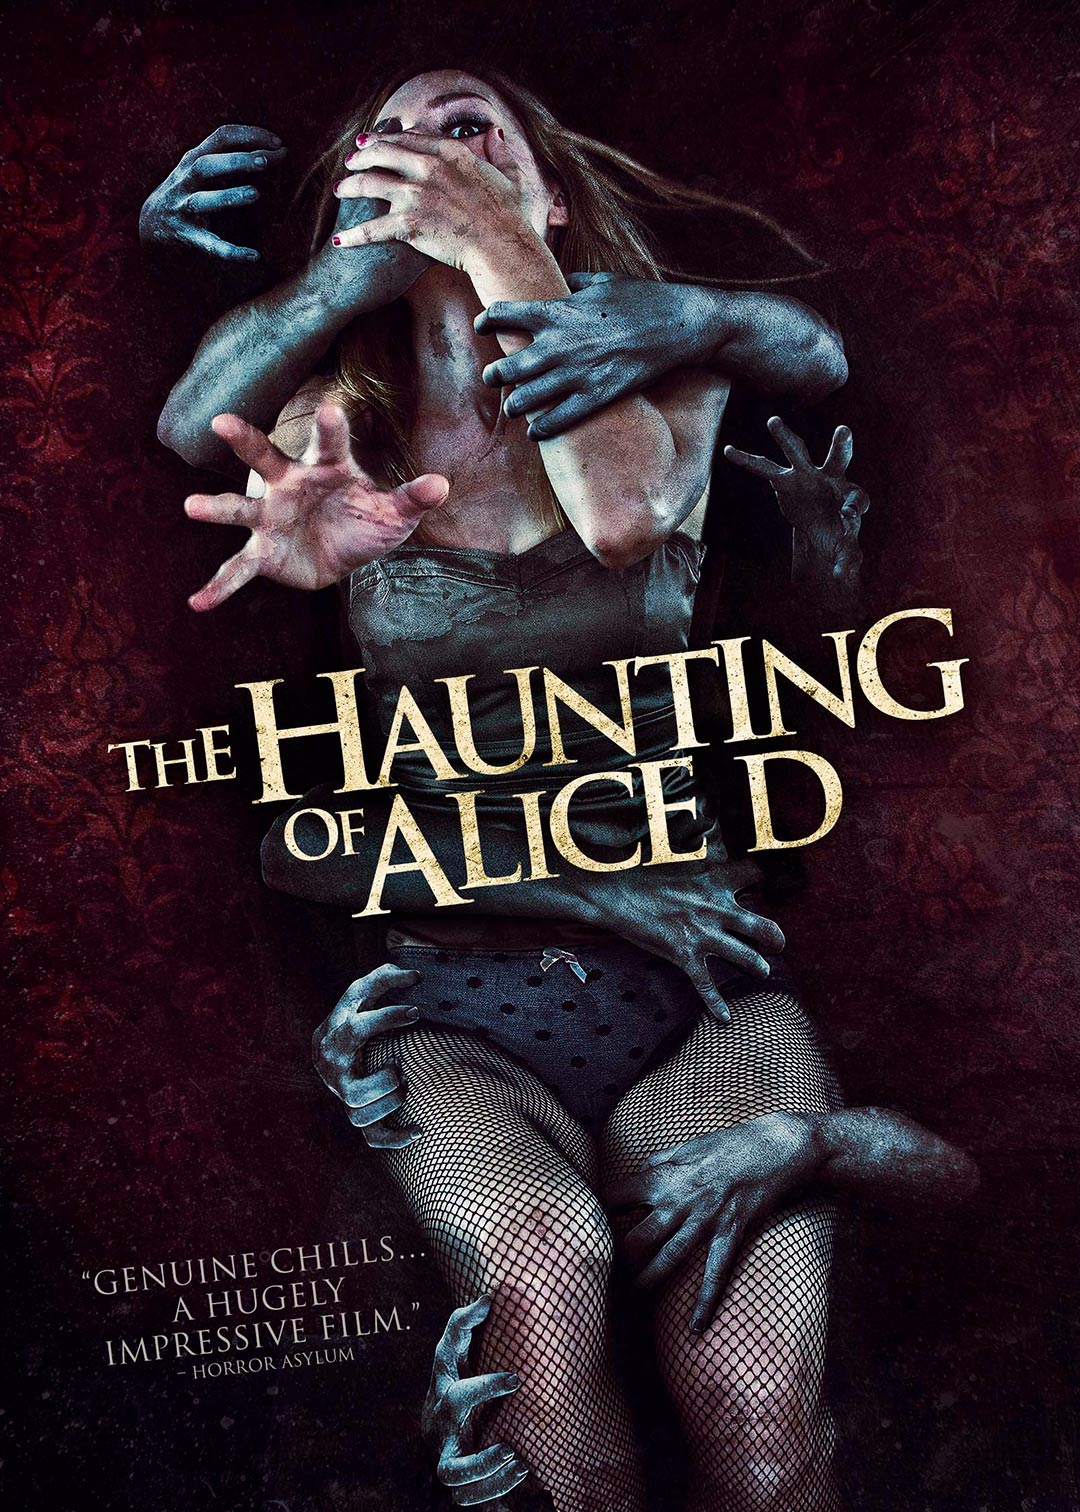 The Haunting of Alice D Poster #1